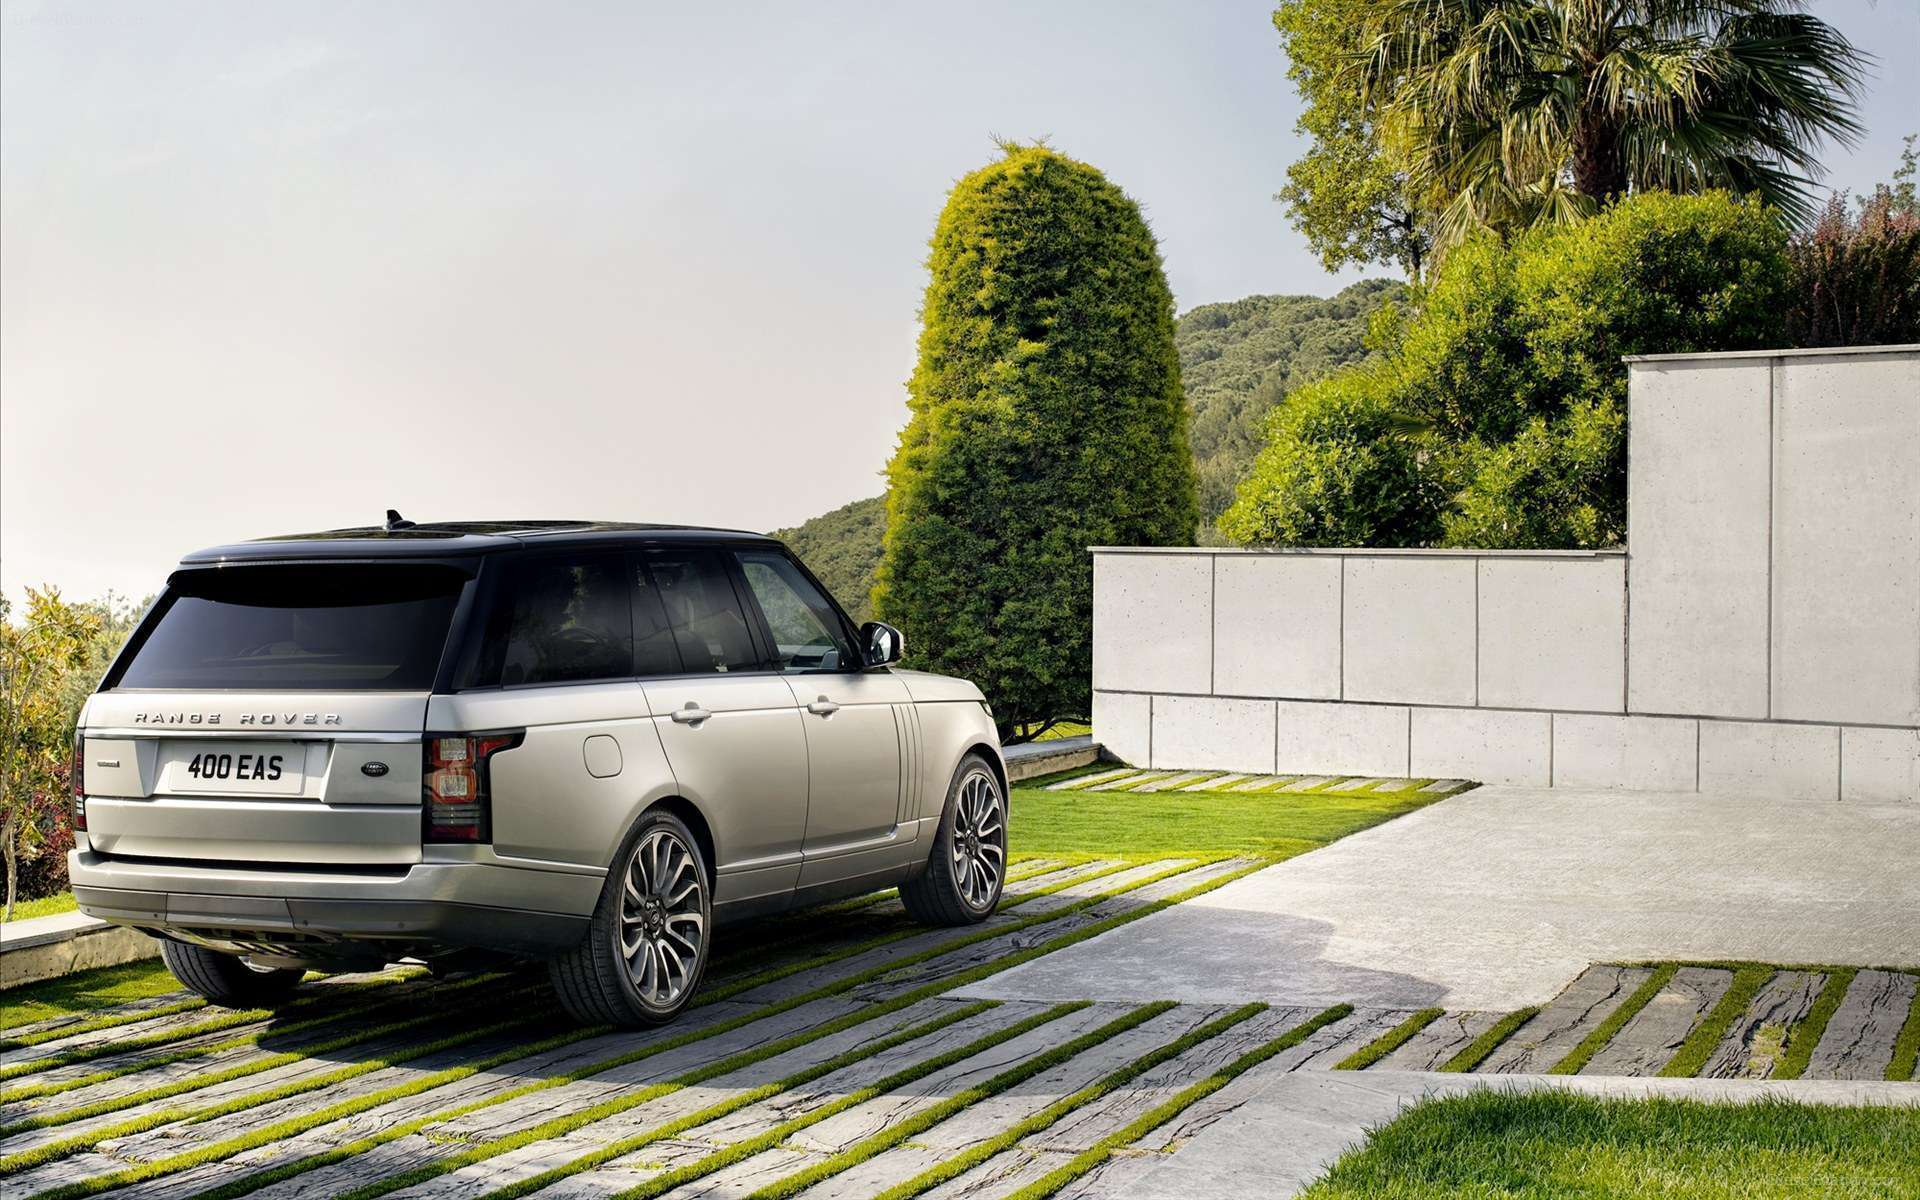 Download Logo Range Rover Hd: View Of 2013 Range Rover 2 Hd Wallpapers : Hd Car Wallpapers